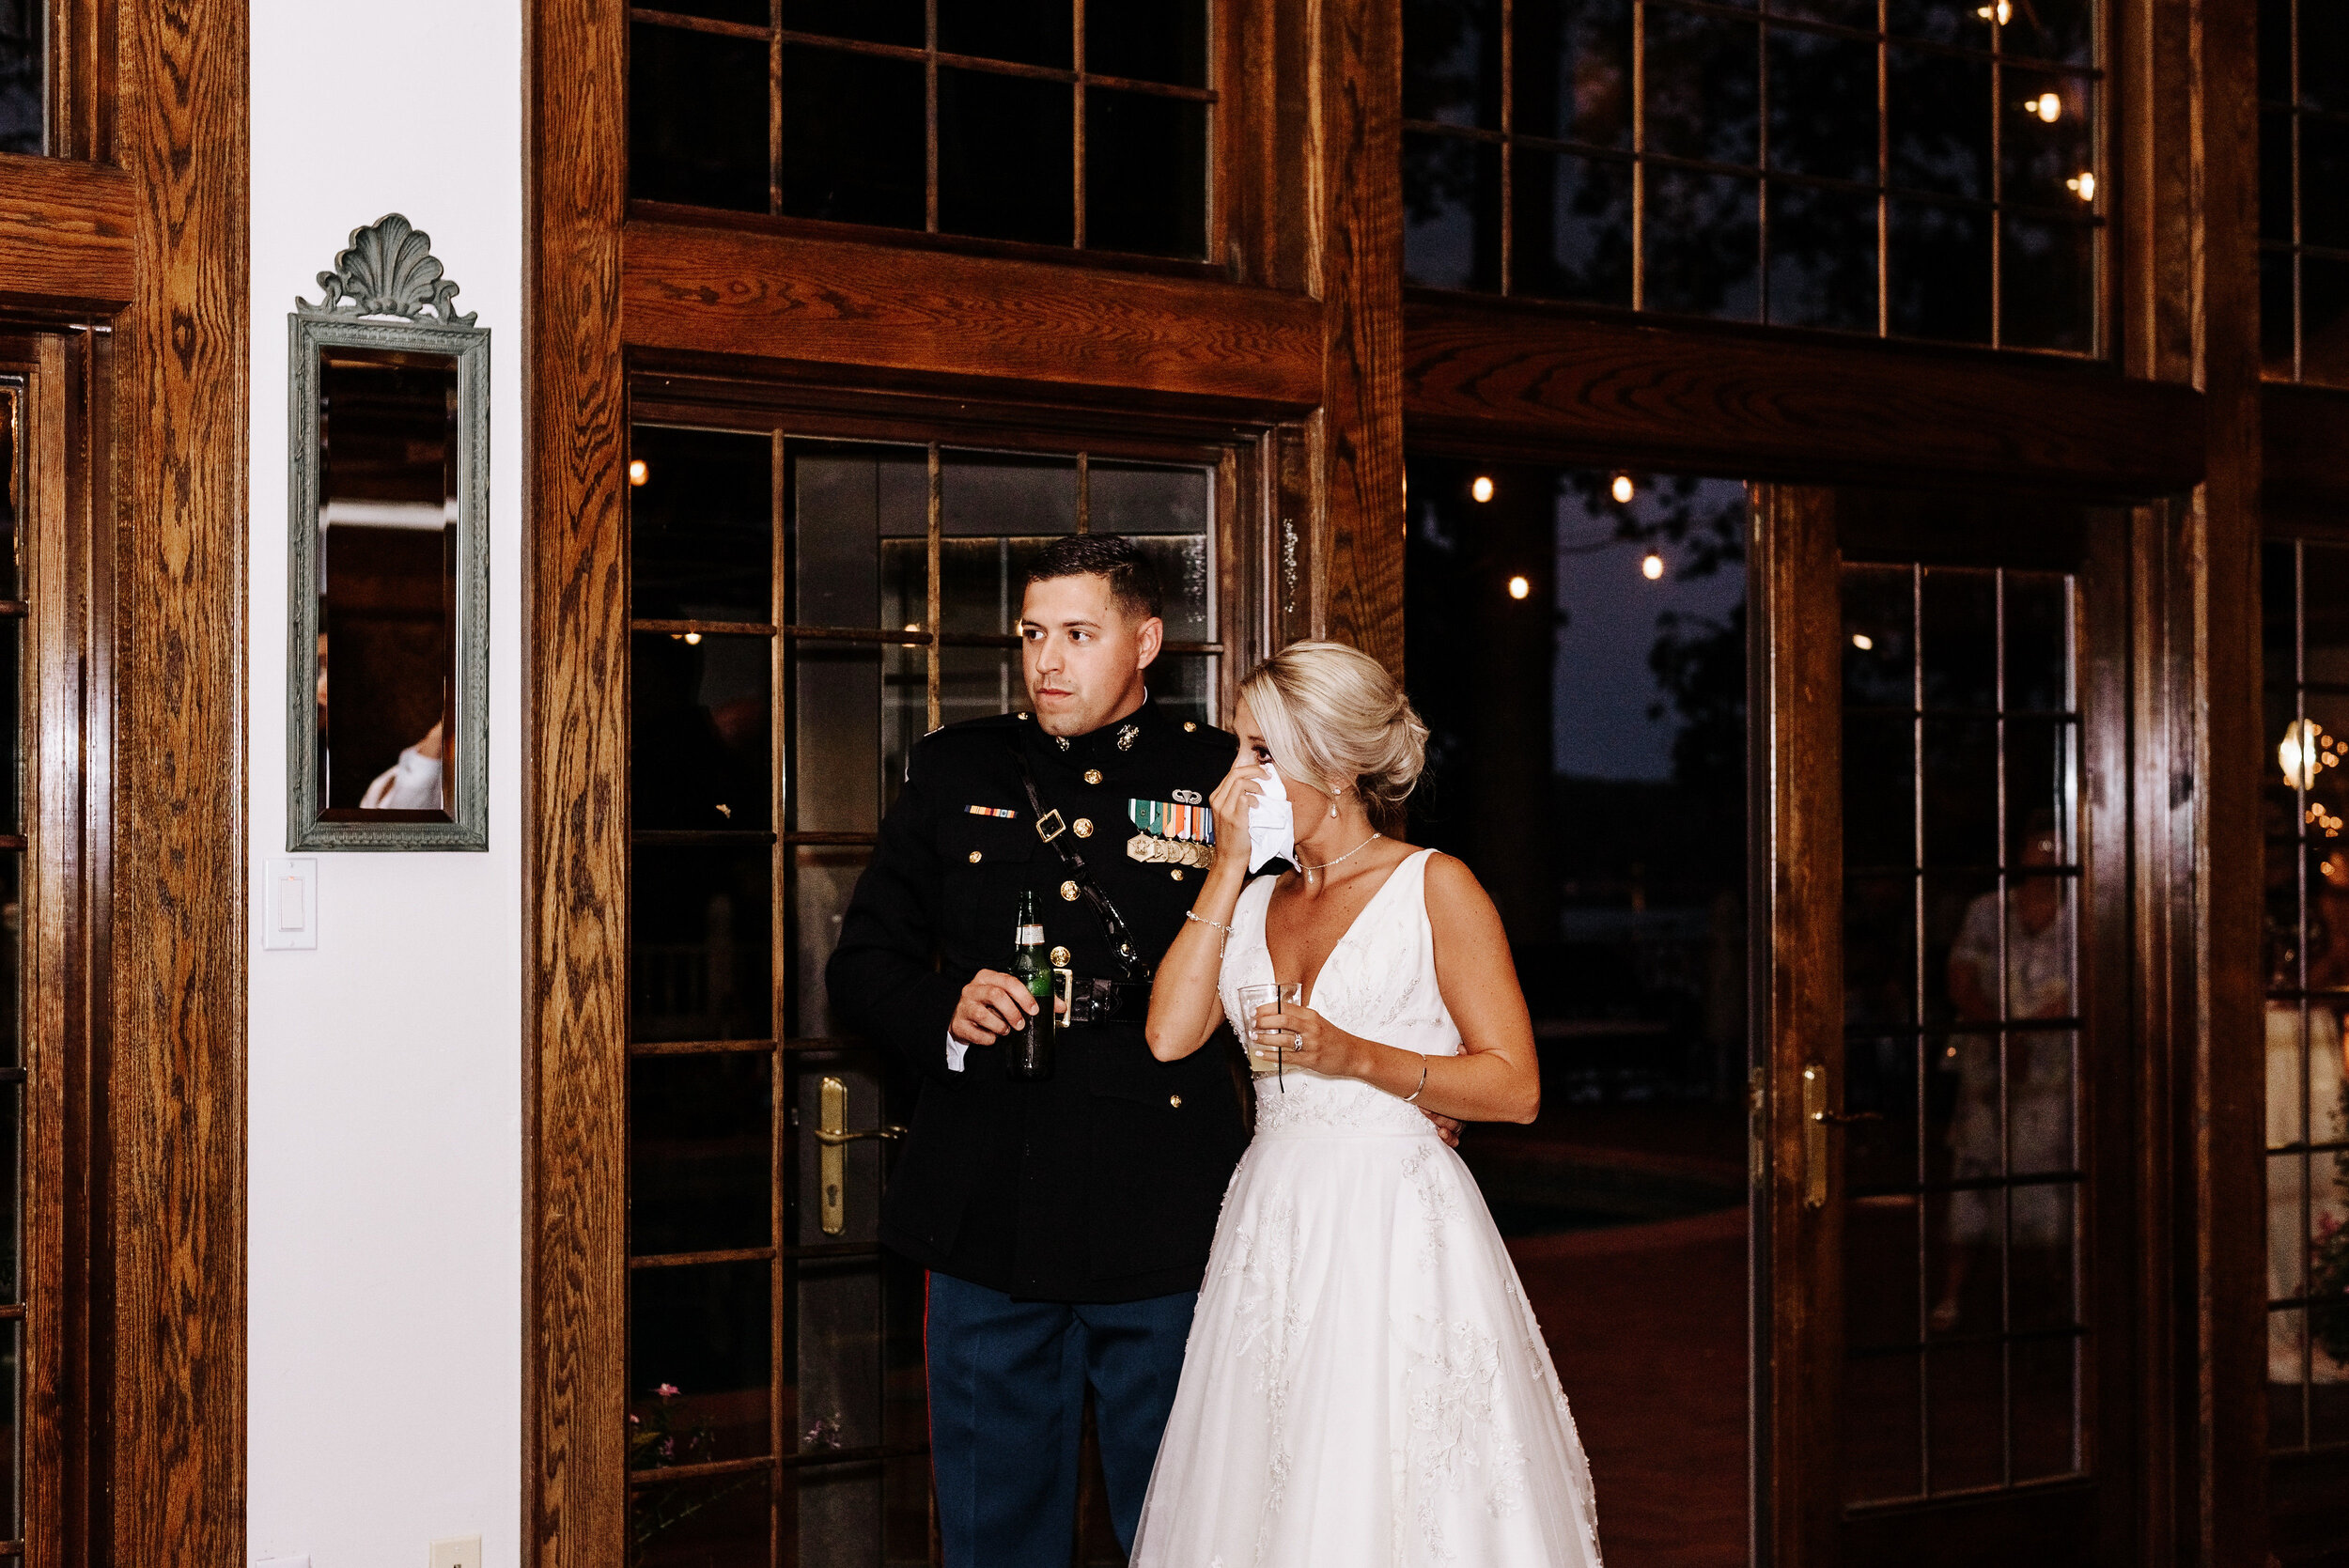 Emily_Mike_Wedding_Celebrations_at_the_Reservoir_Pool_Pavilion_Richmond_Virginia_Wedding_Photographer_Photography_by_V_103.jpg